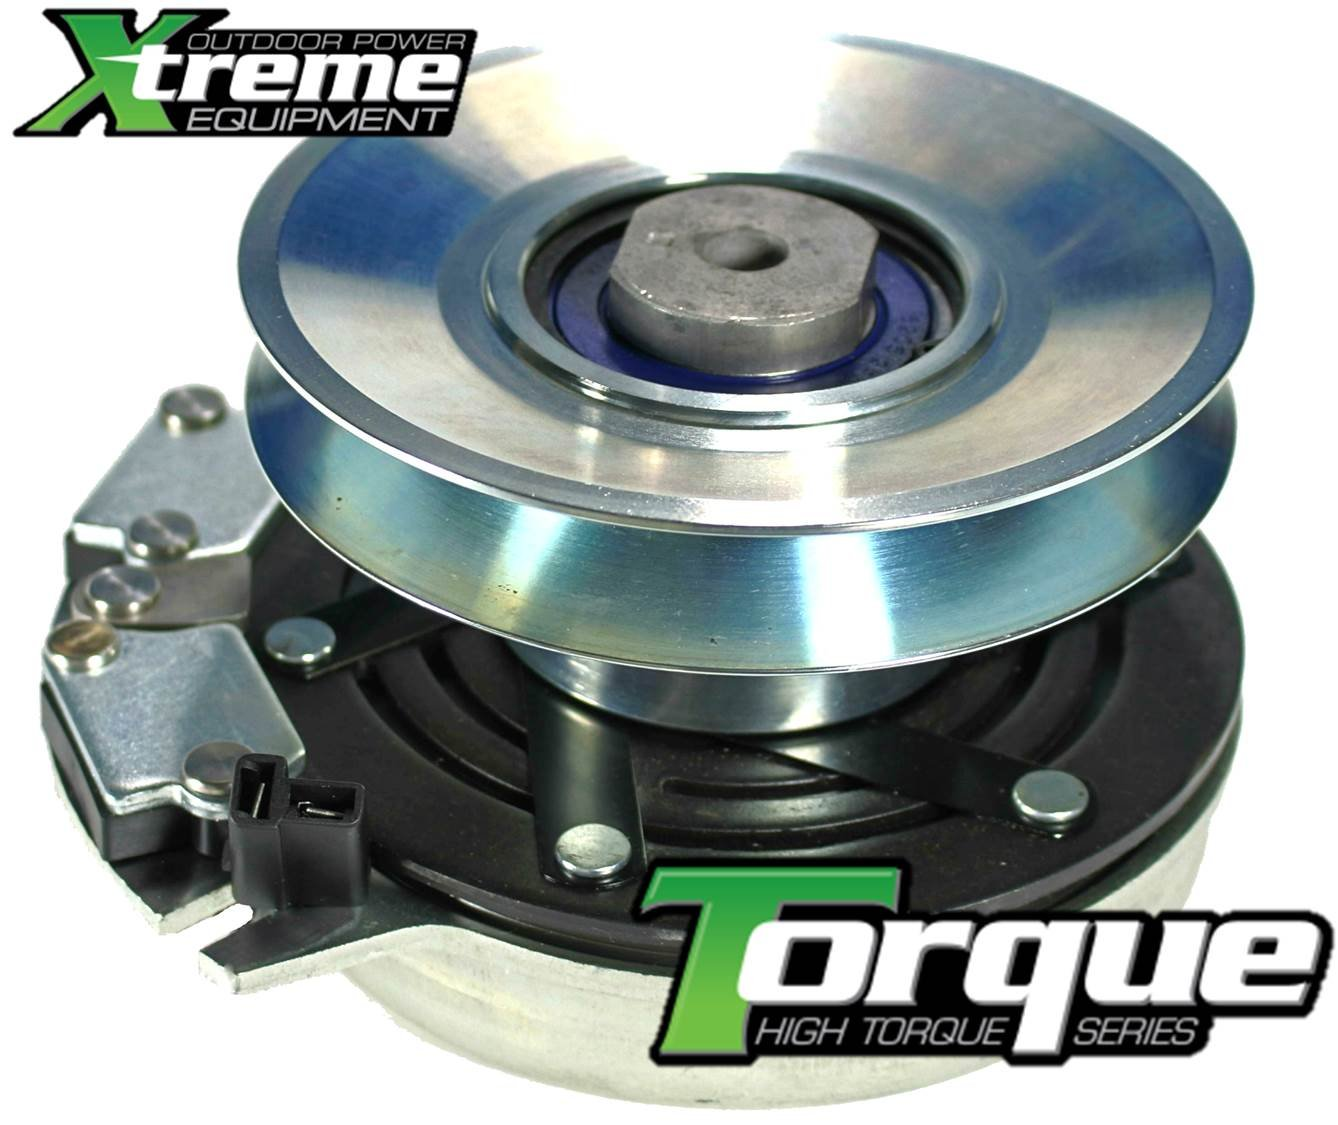 Amazon.com : Xtreme Outdoor Power Equipment Replaces John Deere Electric  PTO Clutch AM141536 Z225 Z425 Z445 - OEM Upgrade! : Garden & Outdoor